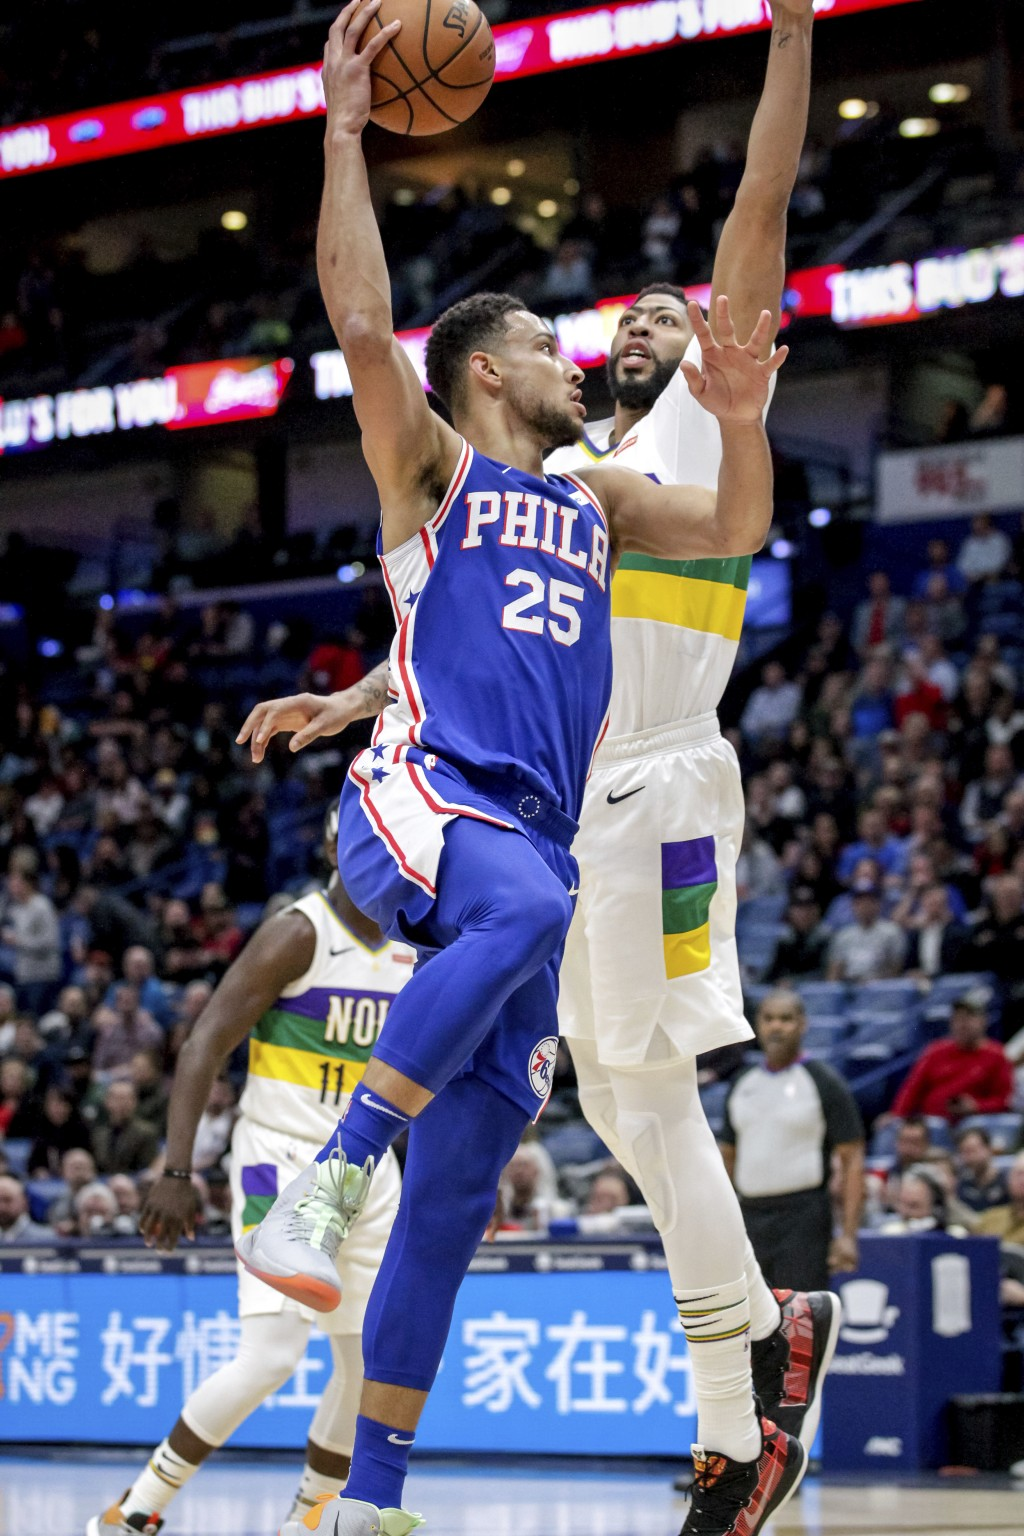 Philadelphia 76ers guard Ben Simmons (25) shoots against New Orleans Pelicans forward Anthony Davis (23) in the first half of an NBA basketball game i...